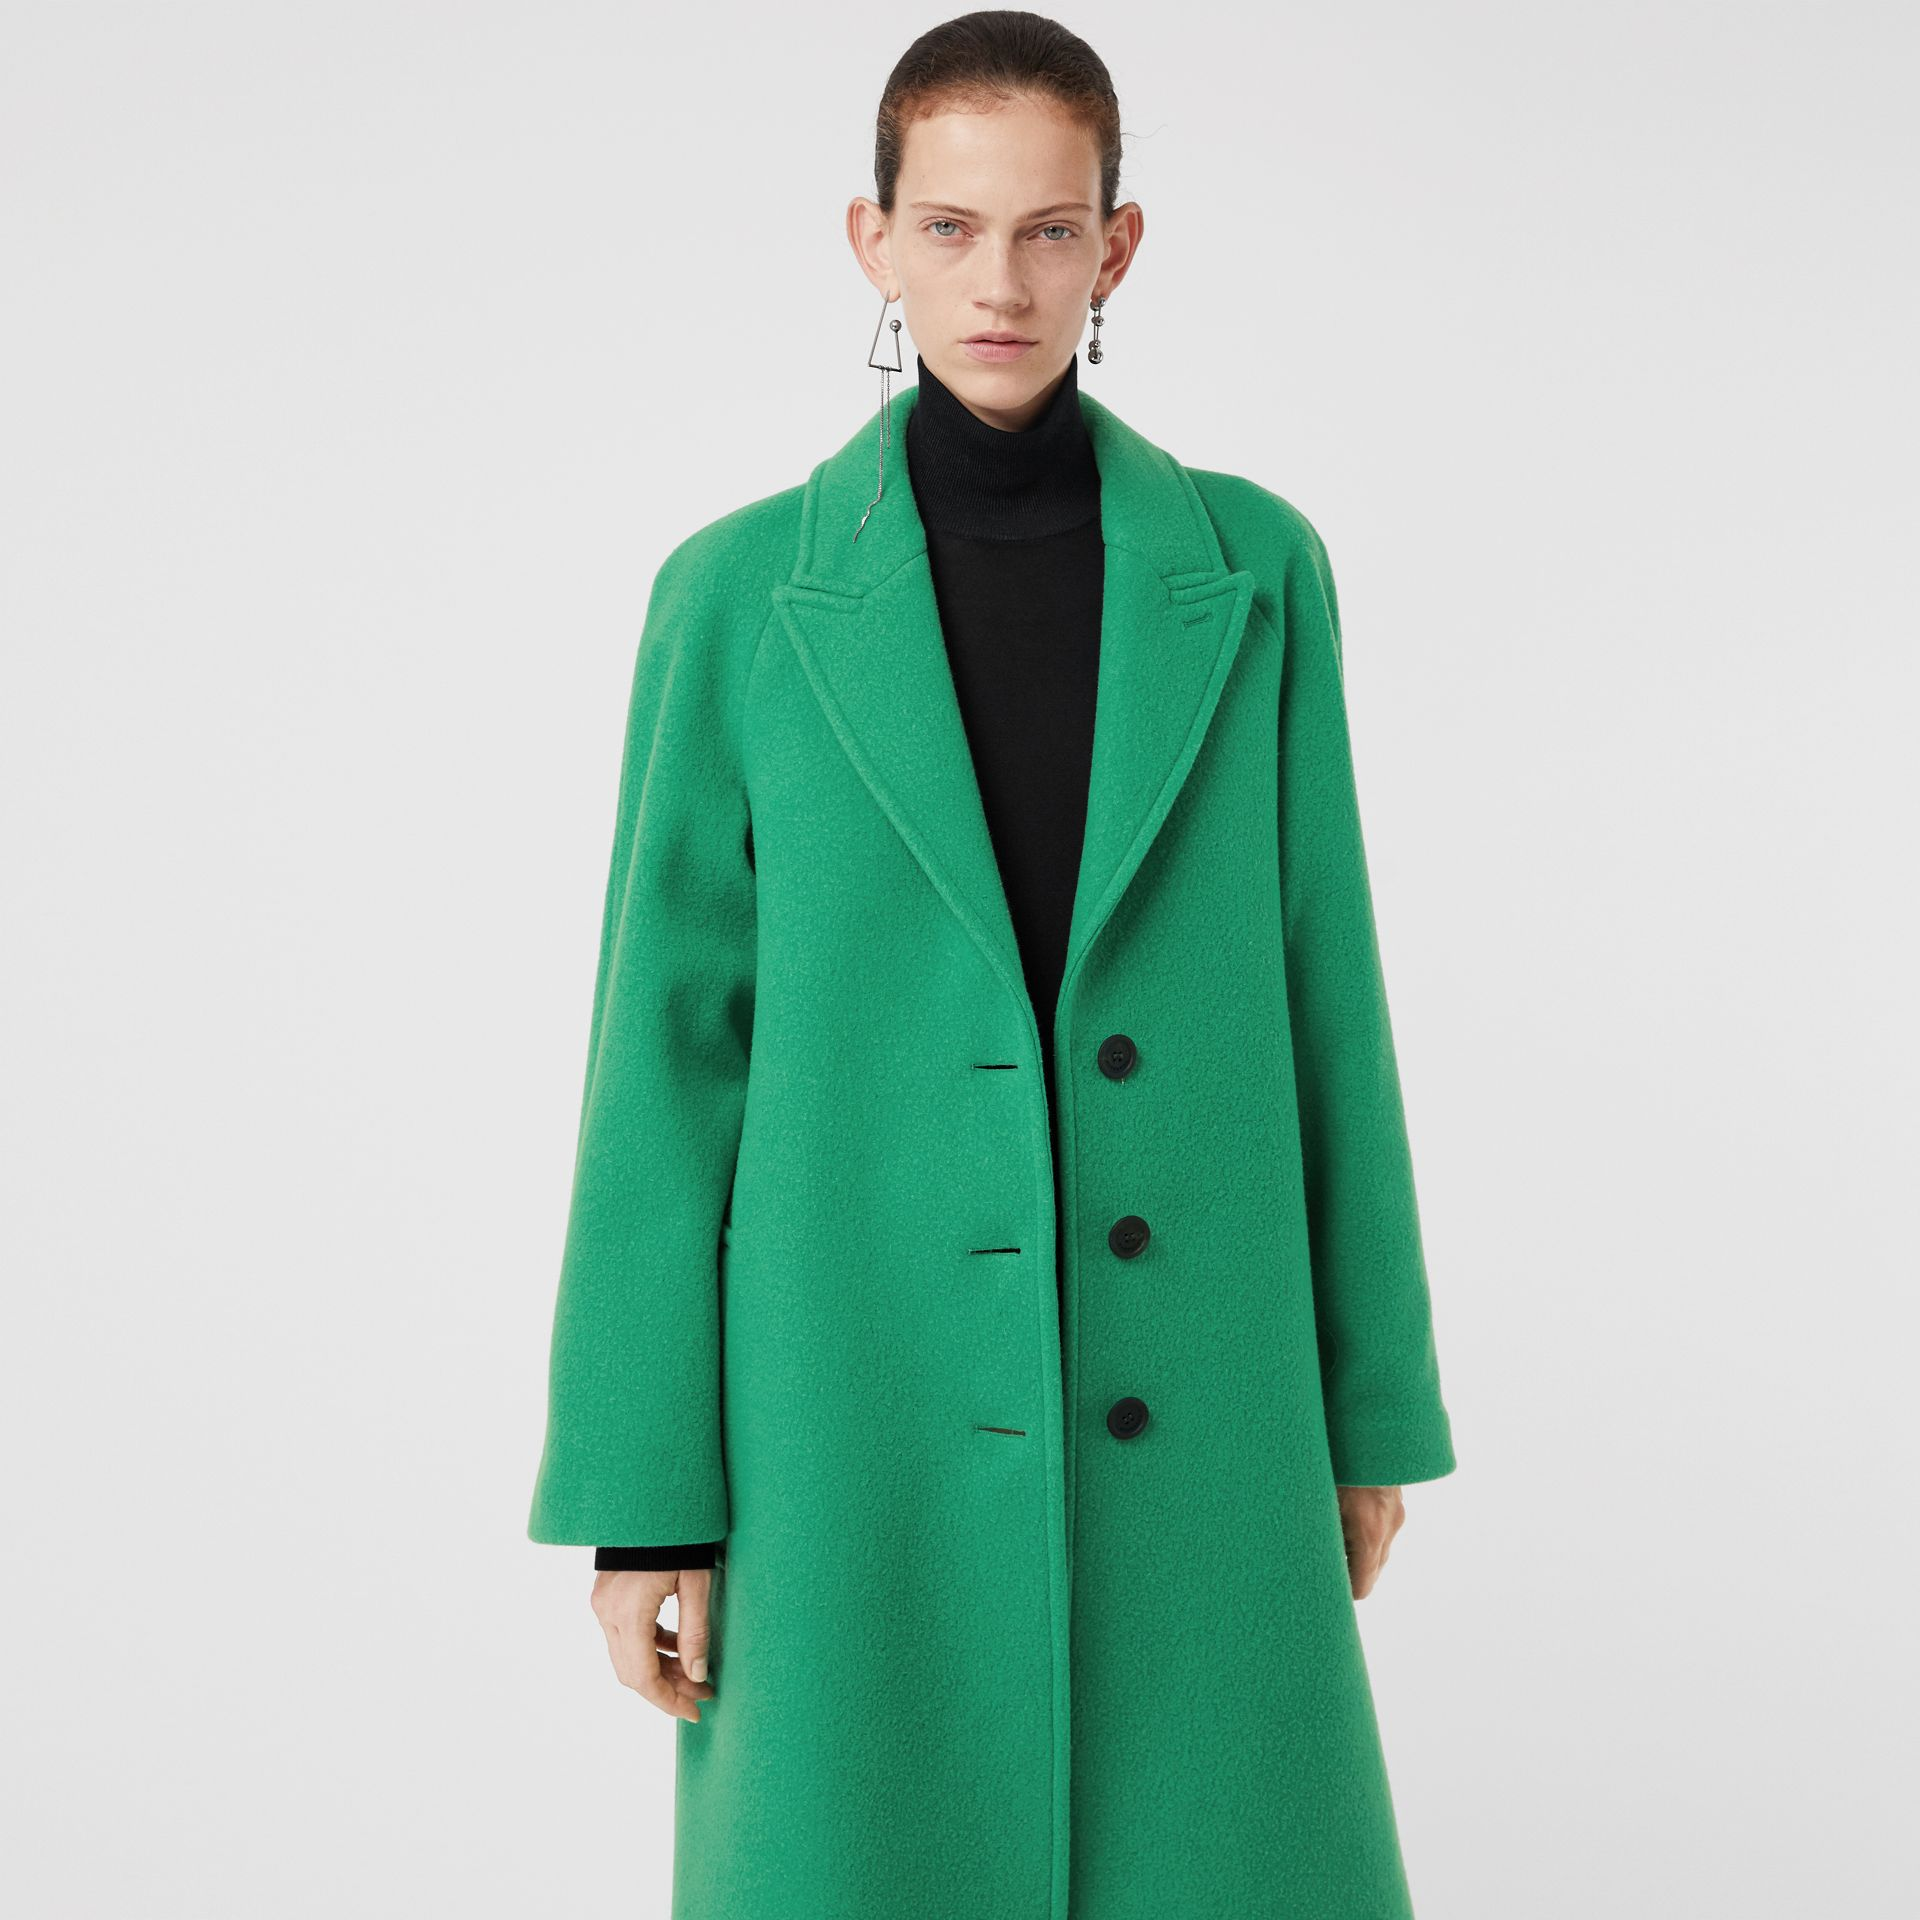 Wool Blend Tailored Coat in Bright Green - Women | Burberry United Kingdom - gallery image 4